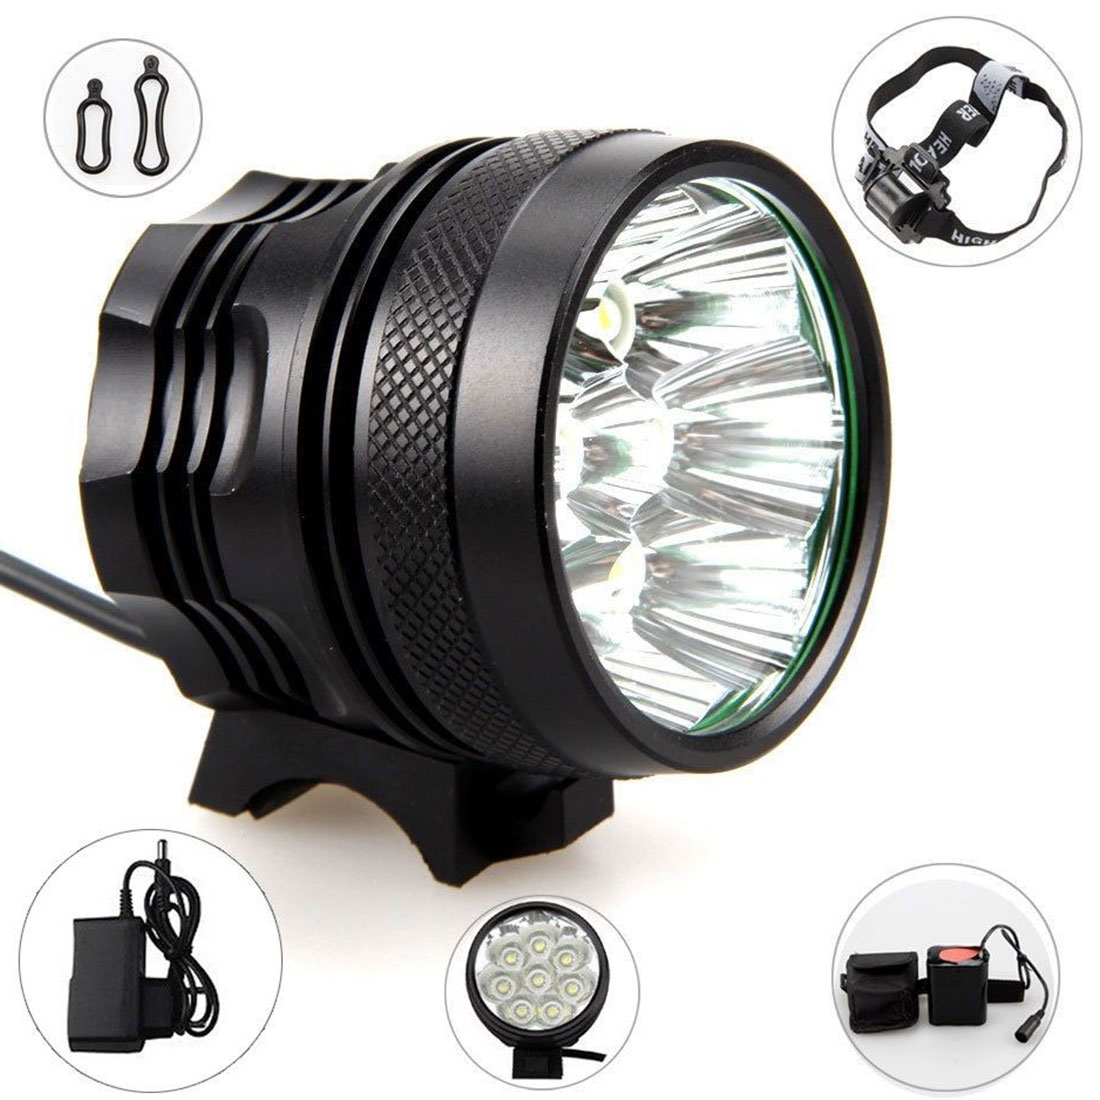 SecurityIng Bicycle Headlights XM-L T6 LED Camping Fishing  Cycling Flashing Light Lamp Waterproof 18650 Battery  Bicycle Lights enlarge